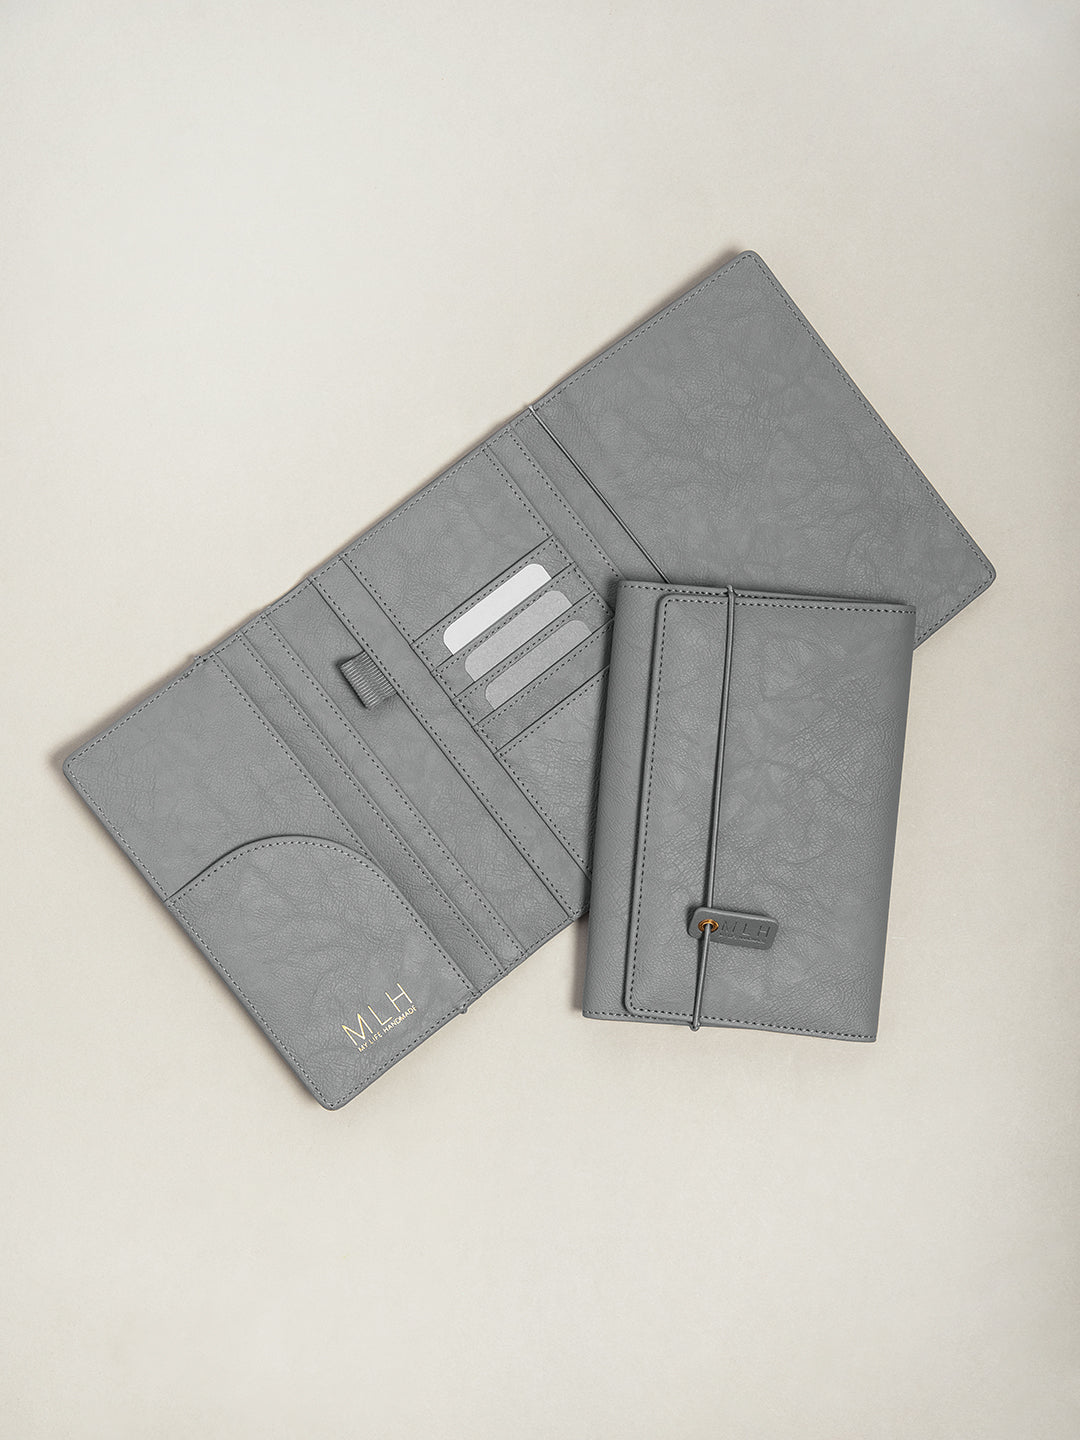 Dark Grey PU Leather Passport Holder and Travel Document Wallet